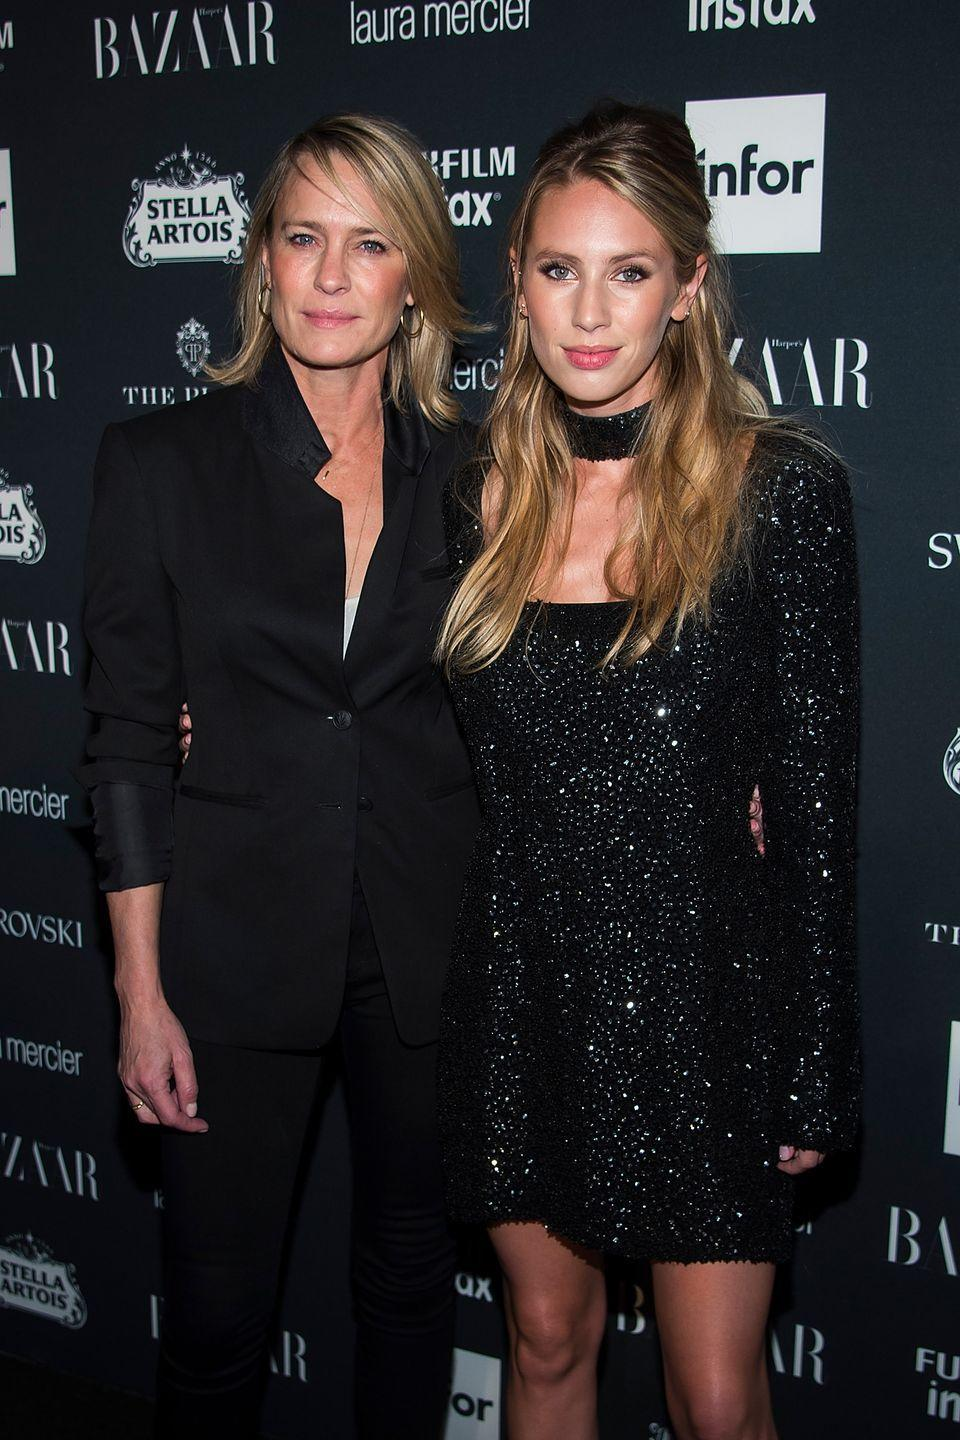 <p>Model and actress Dylan Penn strongly resembles her mother, Golden Globe winner Robin Wright. They both have dirty blond hair, sharp eyes, and a strong nose.</p>